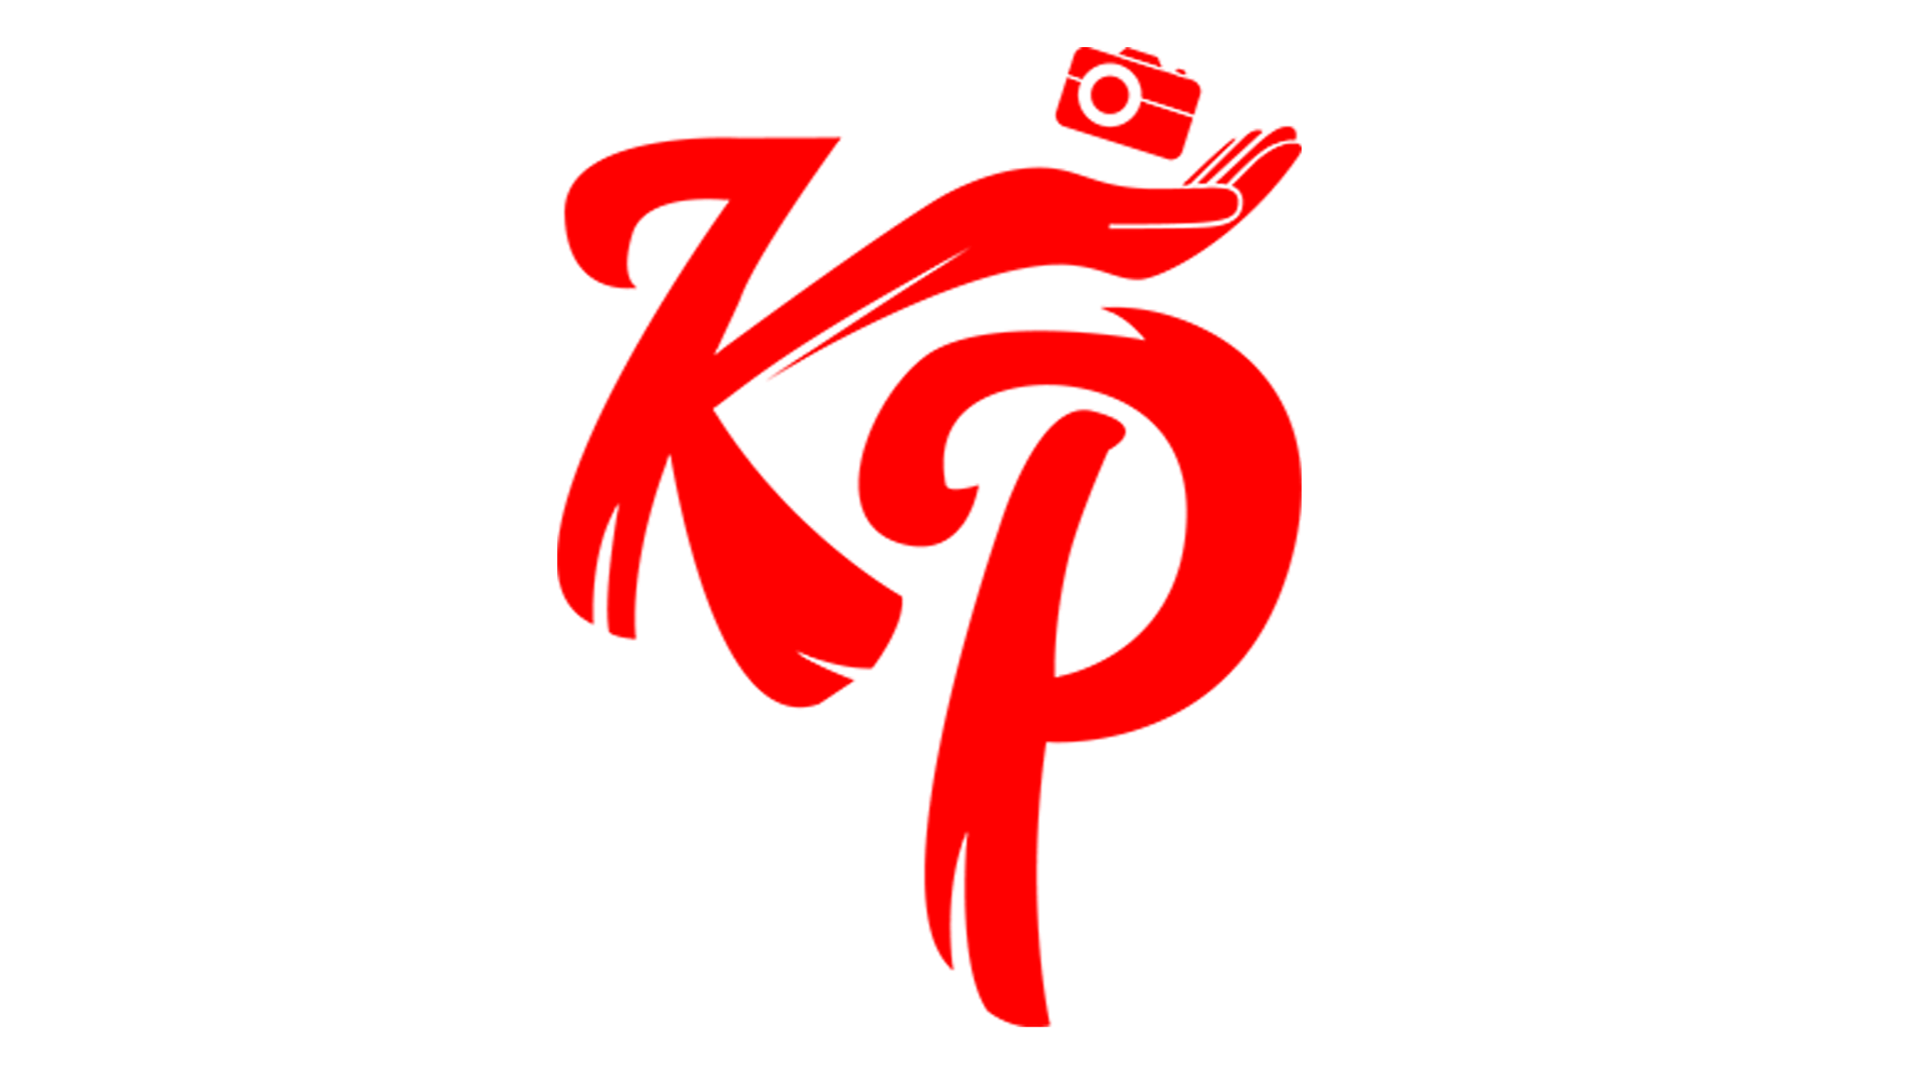 Knolpower logo, Knolpower Symbol, Meaning, History and ...